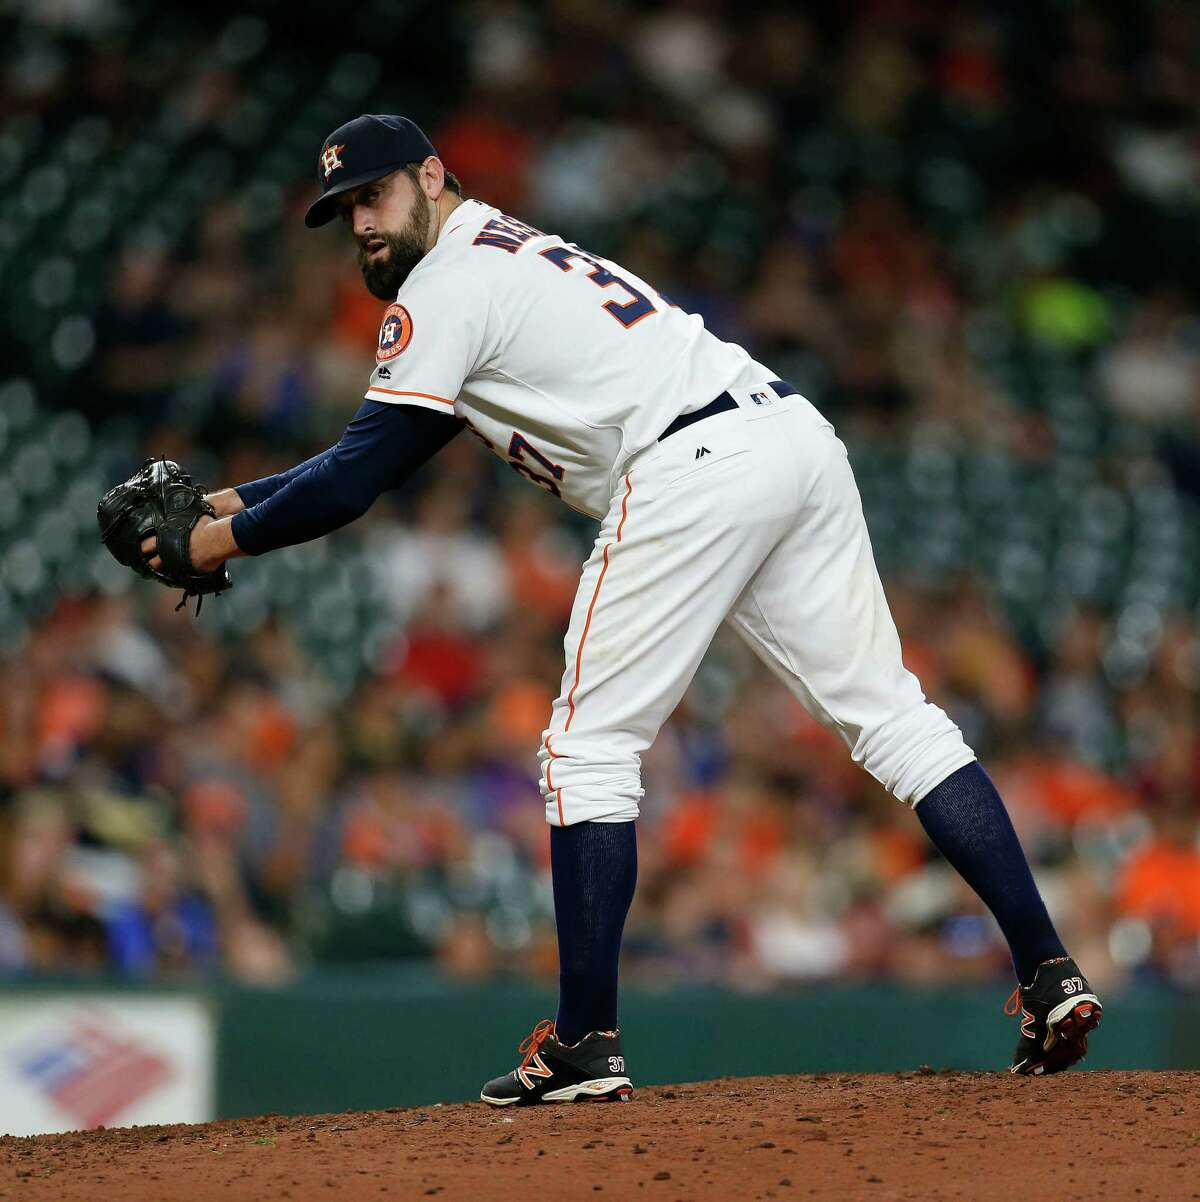 Houston Astros relief pitcher Pat Neshek (37) checks the runner at first base during the ninth inning of an MLB baseball game at Minute Maid Park, Thursday, July 7, 2016, in Houston.